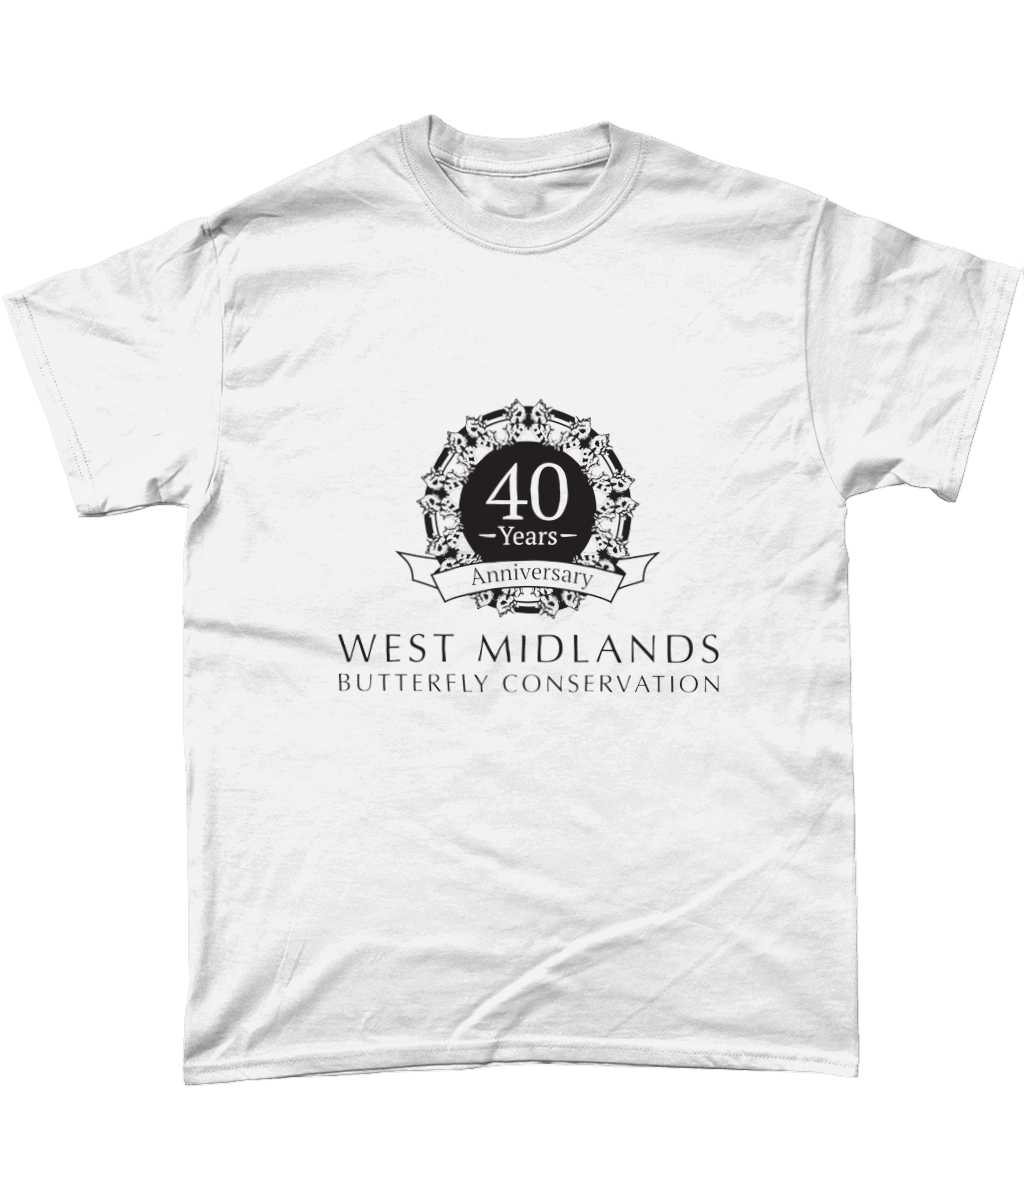 West Midlands 40 Year Anniversary Adult (Unisex) T-Shirt